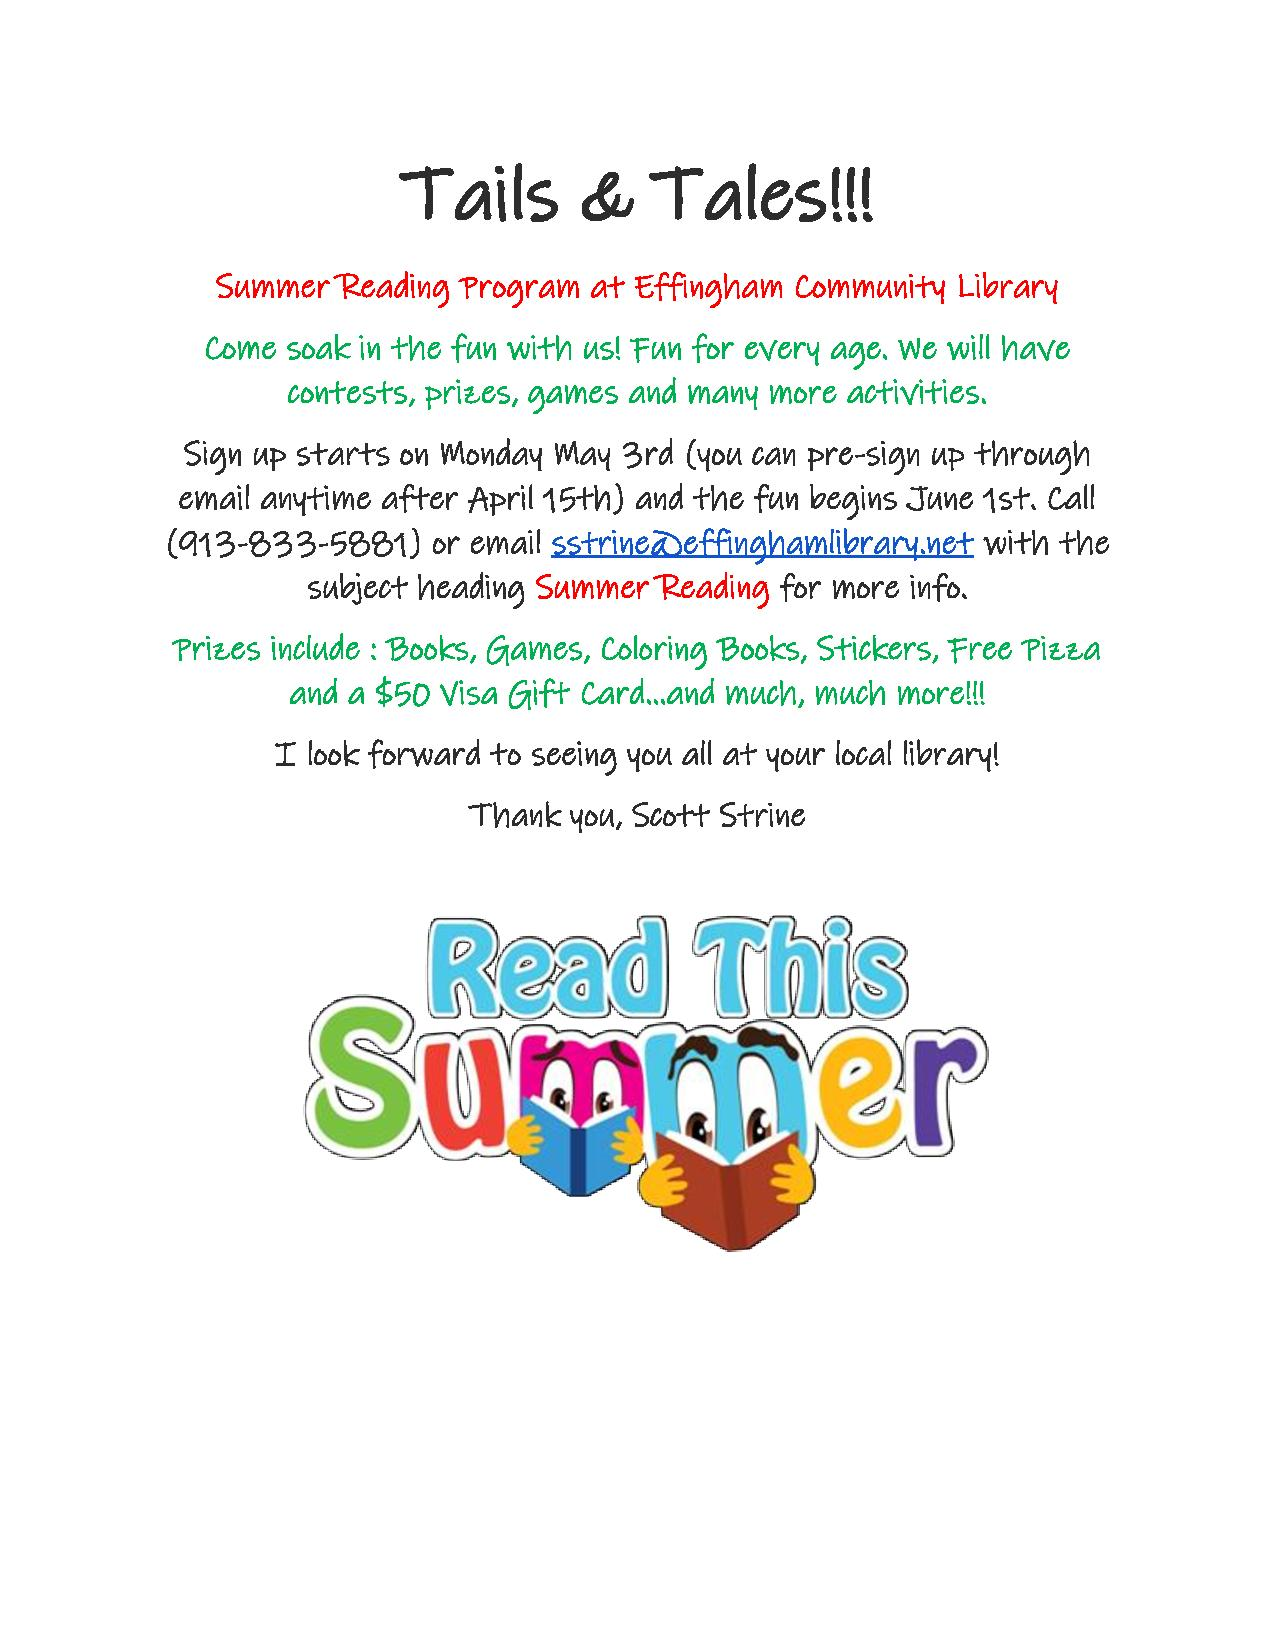 Check out Summer Reading at the Effingham Library! Click here to see the flier!